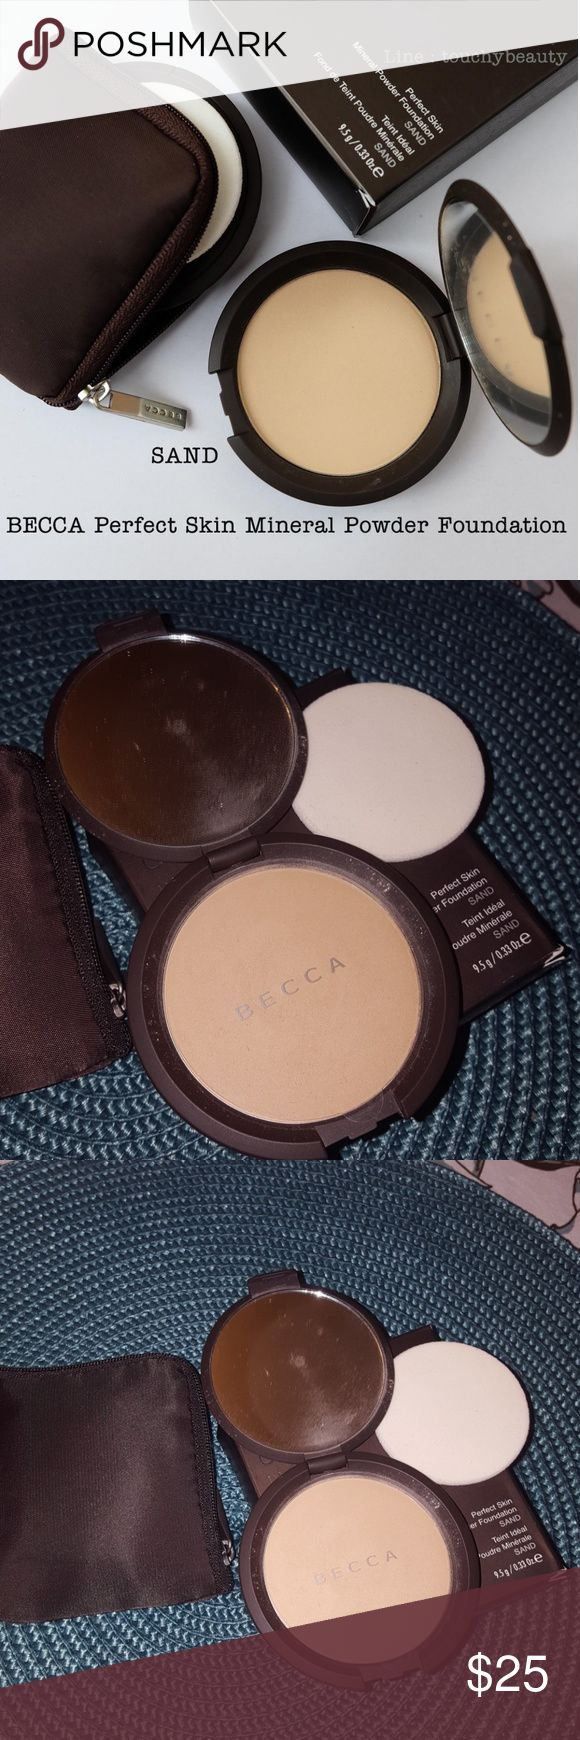 Becca Perfect Skin Mineral Powder Foundation Pure mineral foundation by Becca in the shade Sand.Brand New. Never used. Mineral pigments are pressed into this silky powder to deliver buildable coverage that feels light, looks fresh all day and leaves skin with a soft, luminous finish. This water-resistant formula, enriched with antioxidant vitamins lasts all day. Does not contain parabens phenoxyethanol, oil, fragrance, alcohol, chemical dyes, talc, or other fillers. BECCA Makeup Foundation